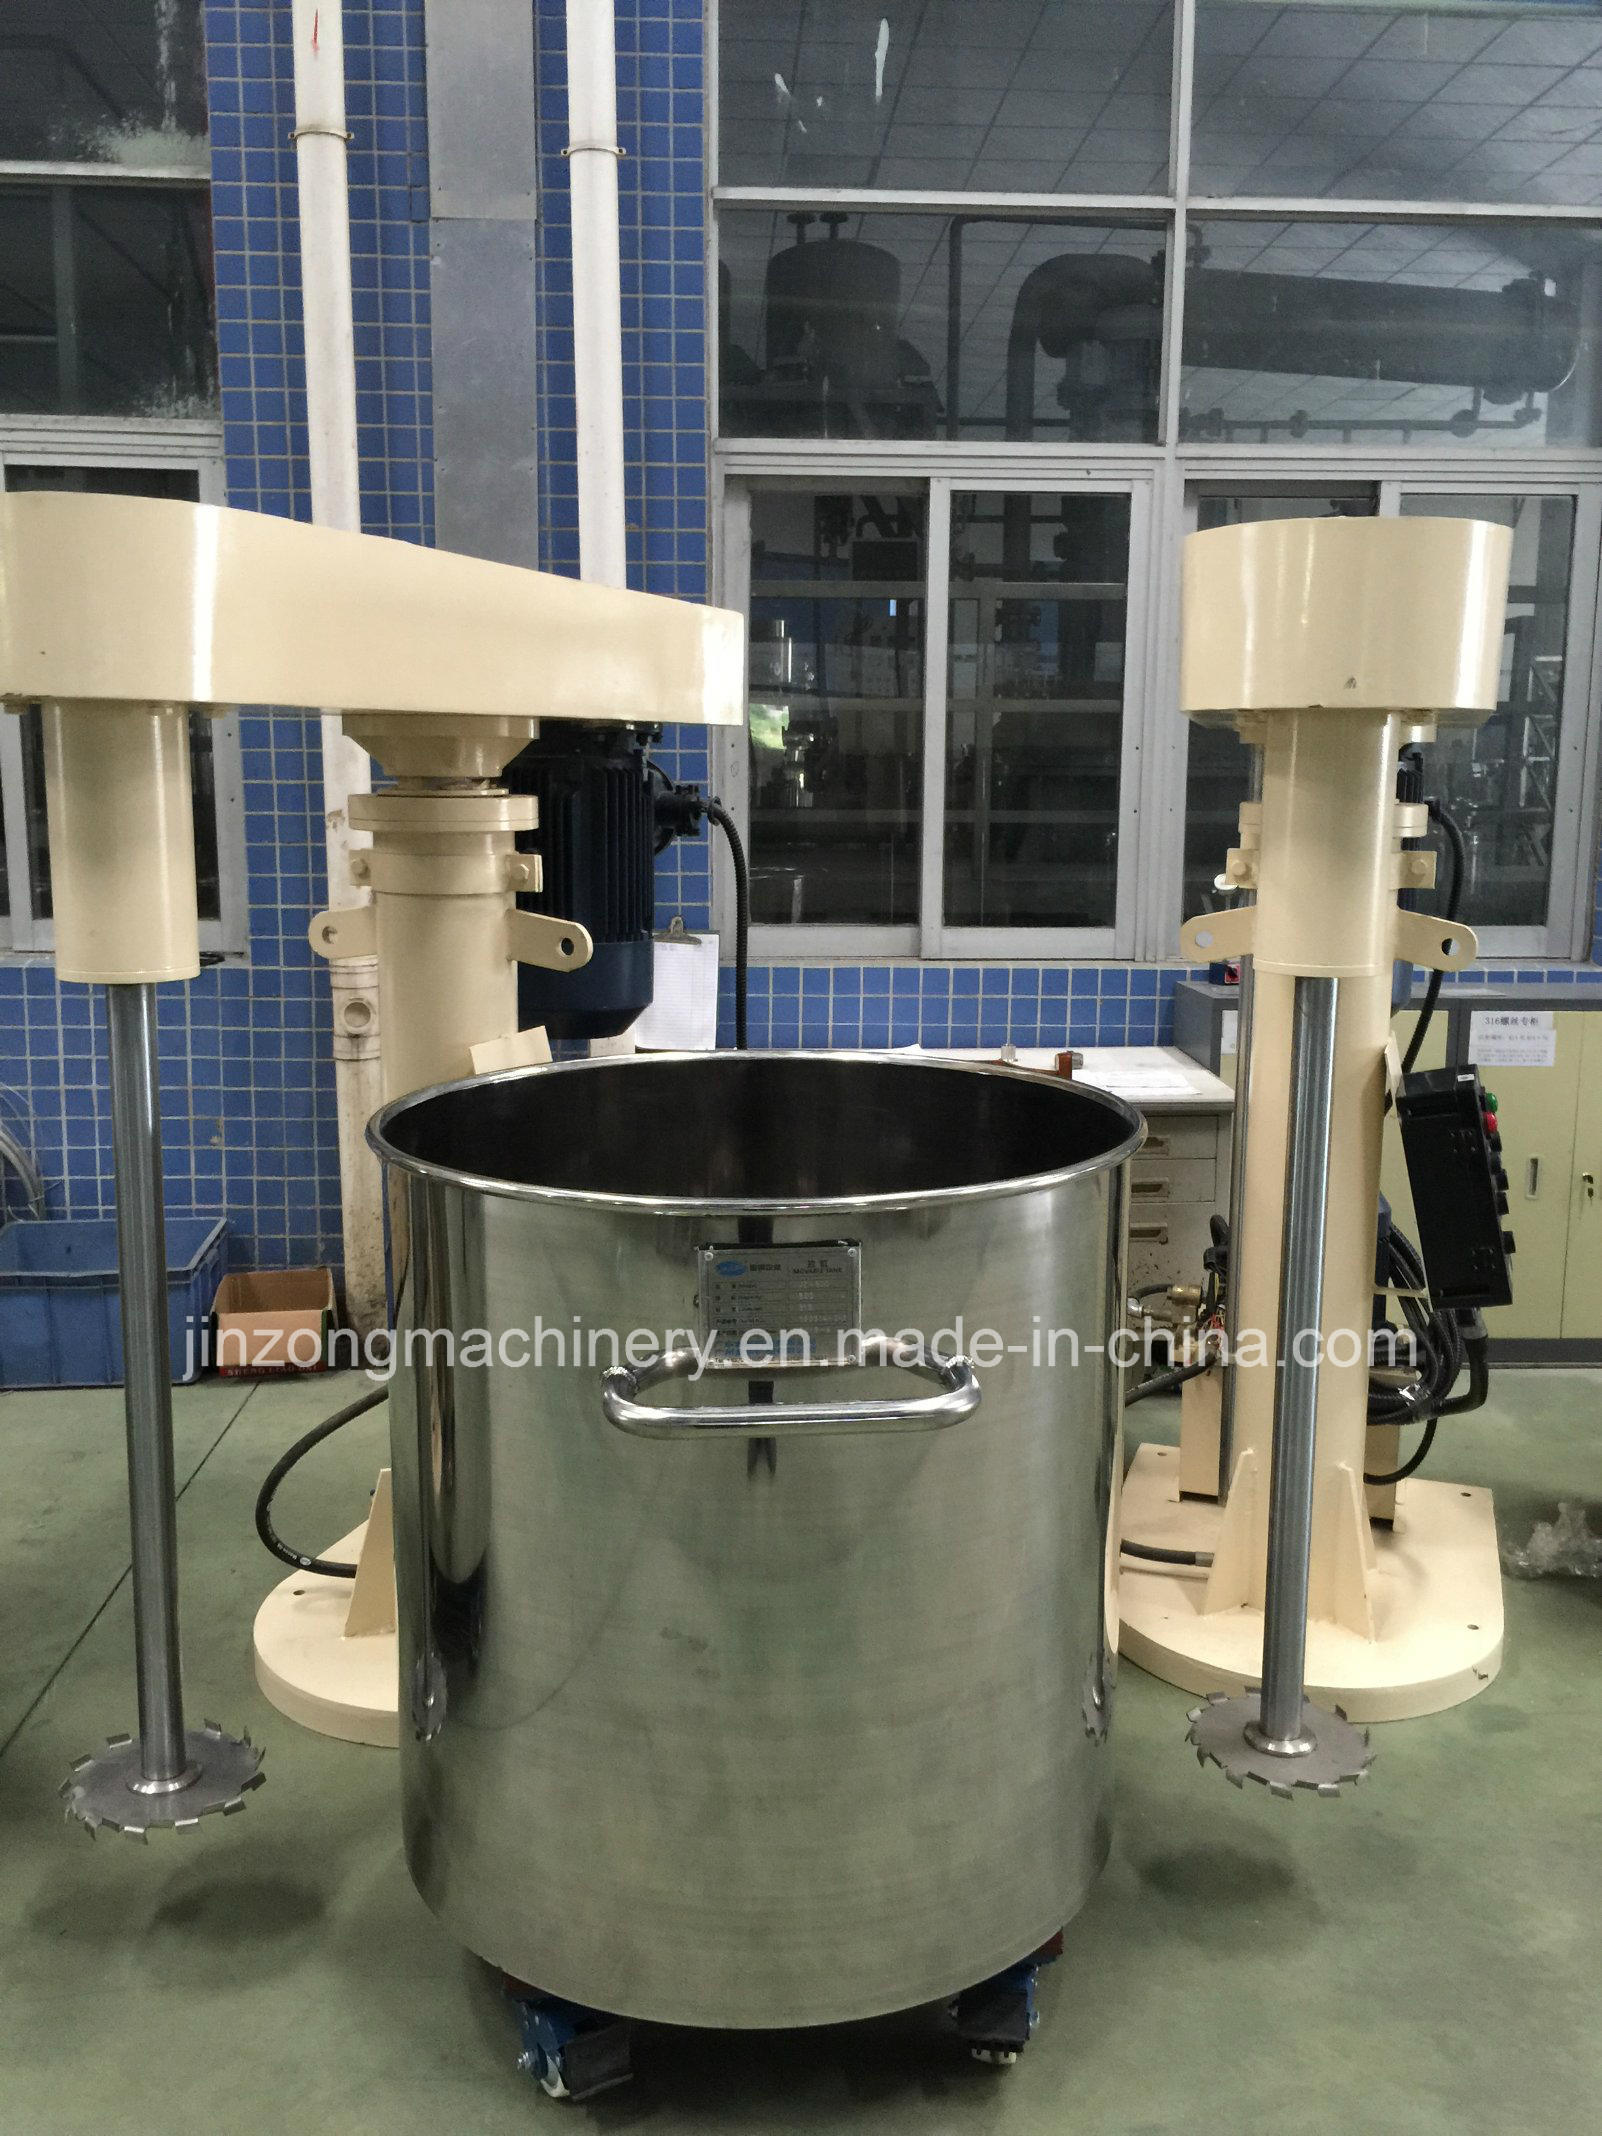 Hydraulic Lifting Paint Coating High-Speed Disperser Mixer Making Equipment Plant